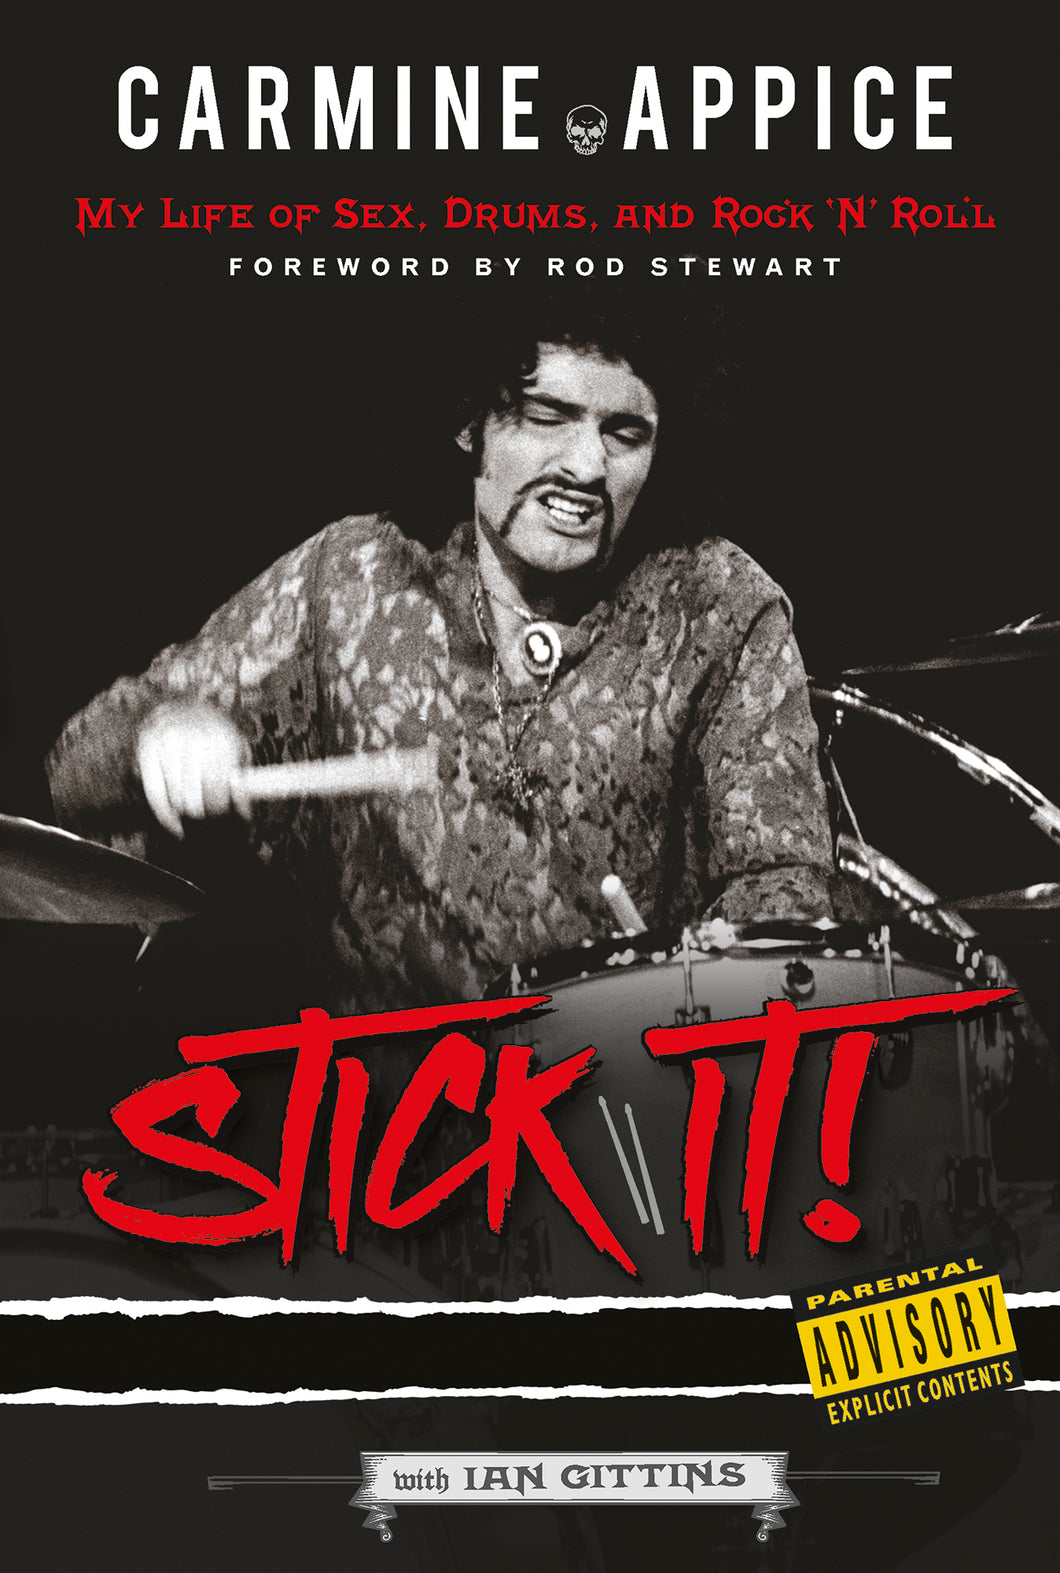 Carmine Appice: Stick It!